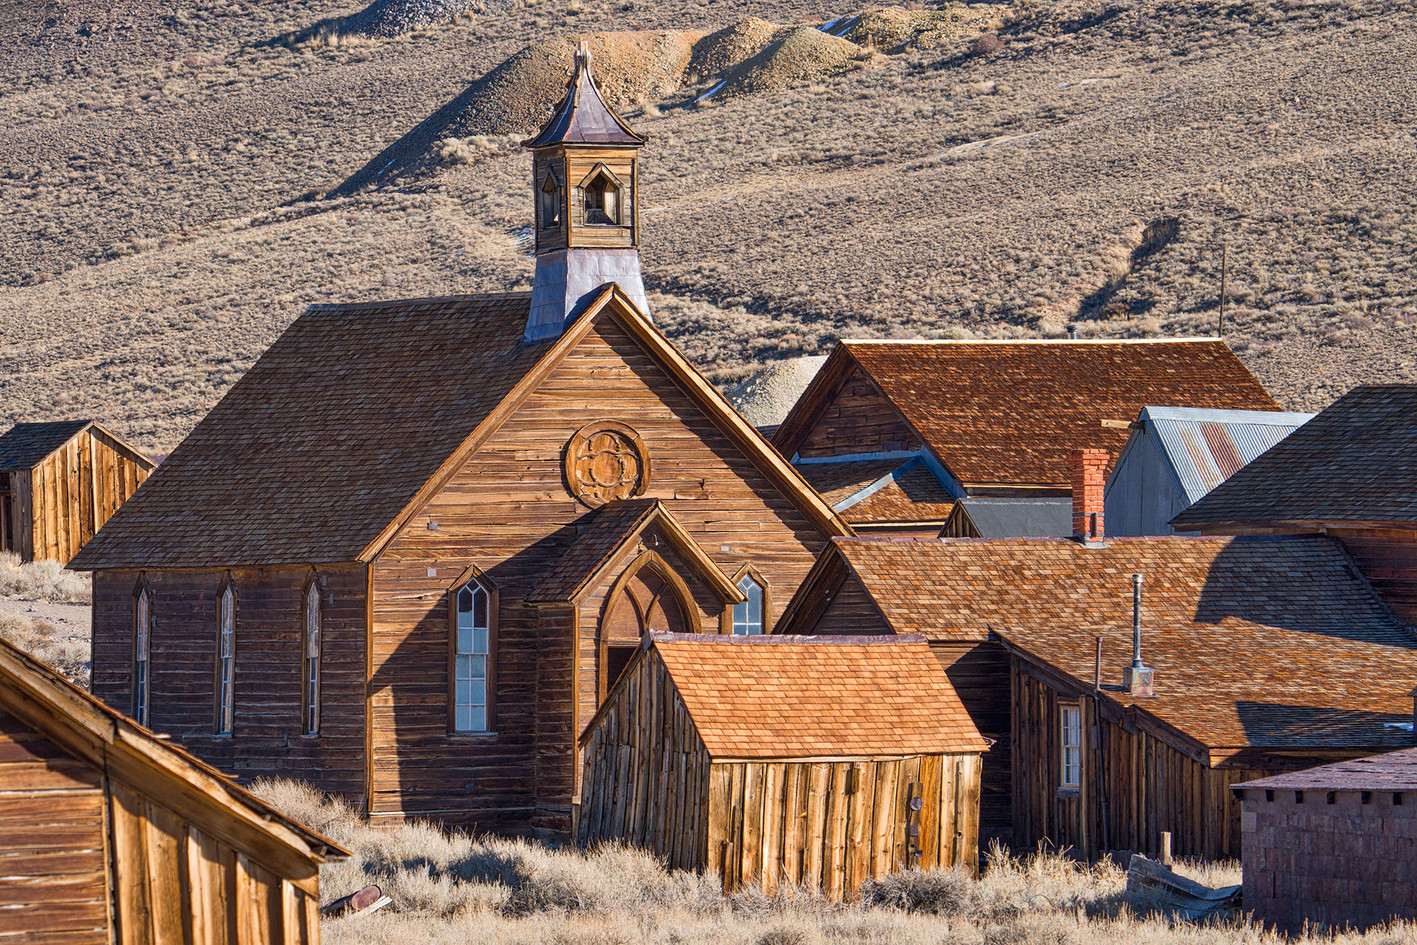 Church At Bodie, Rick Kattelmann, Rooted